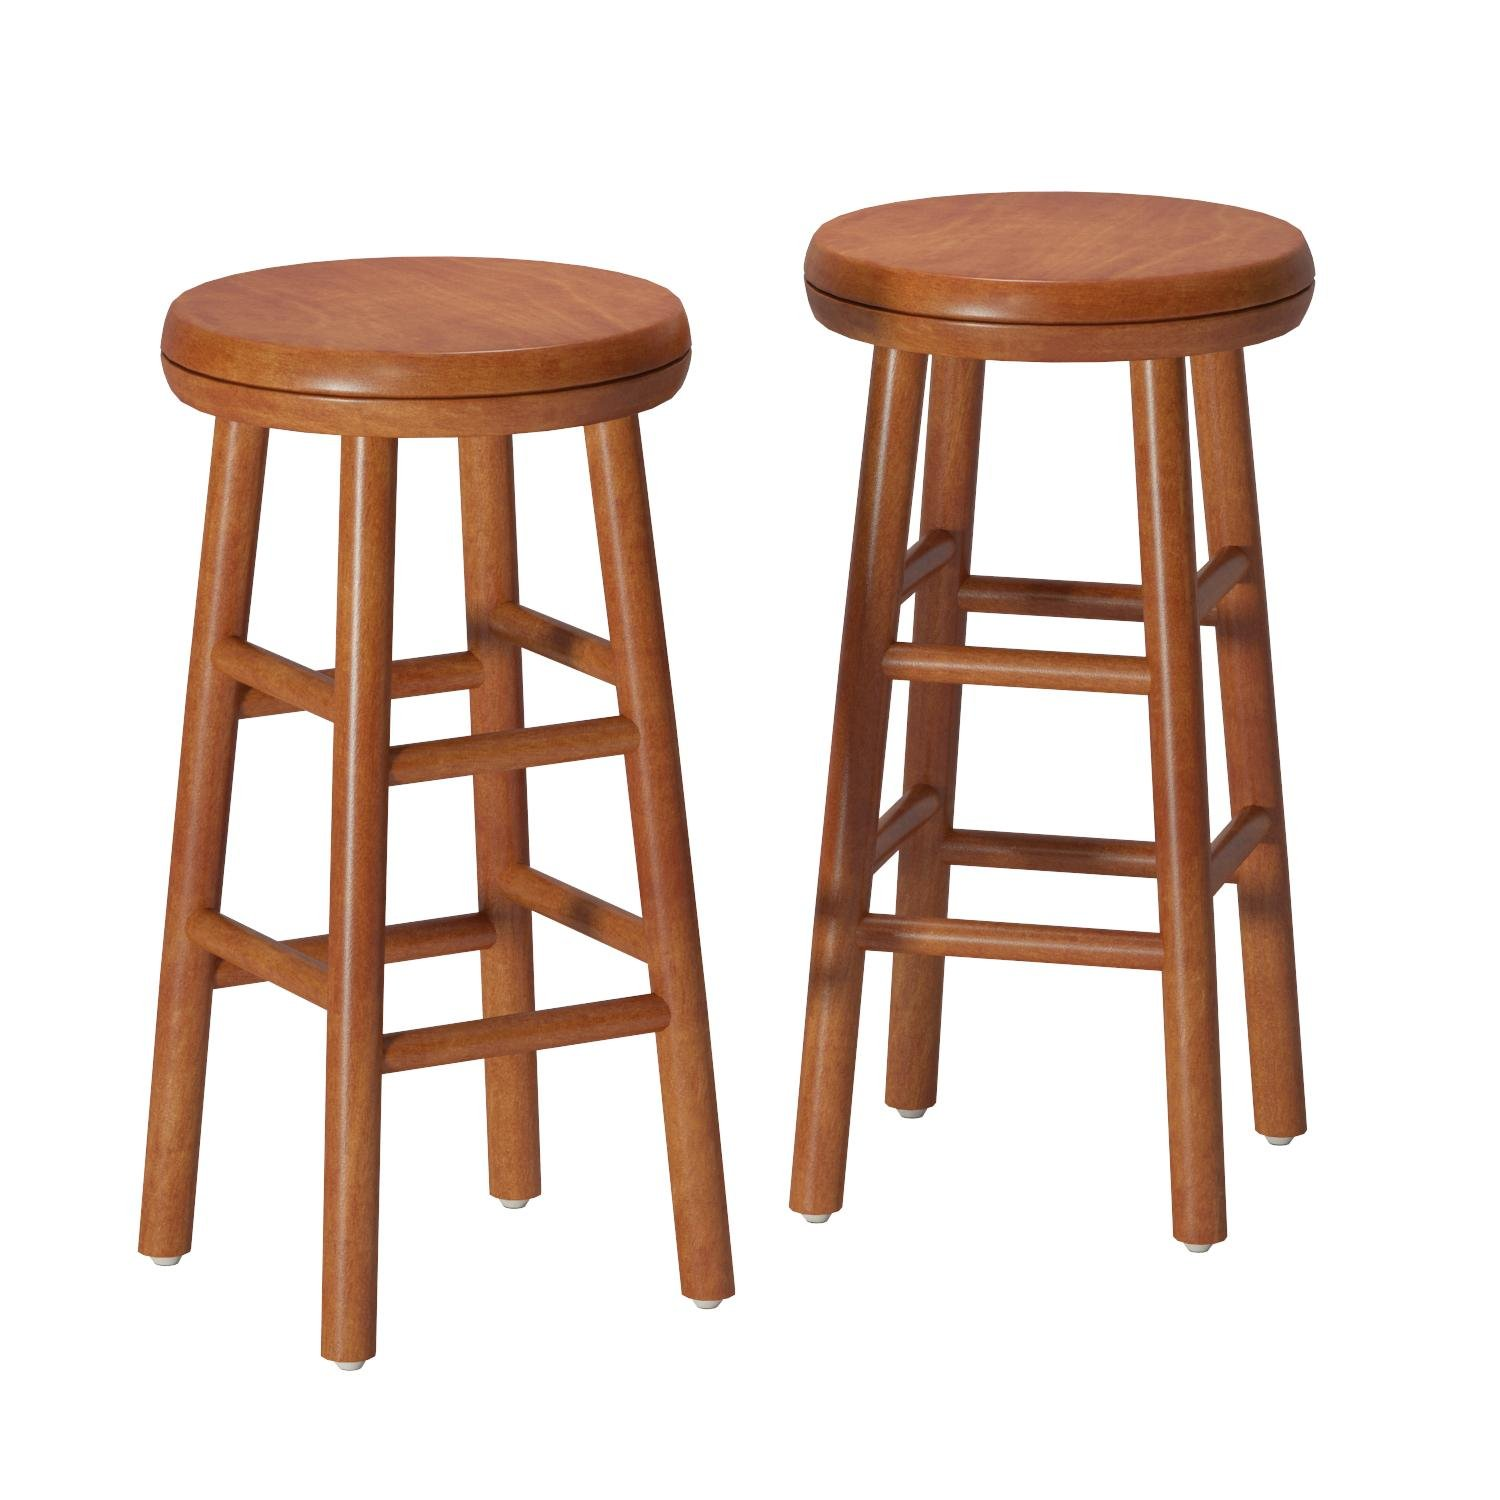 Winsome Wood Assembled 24-Inch Cherry Finish Swivel Stools, Set of 2 by Winsome Wood (Image #1)